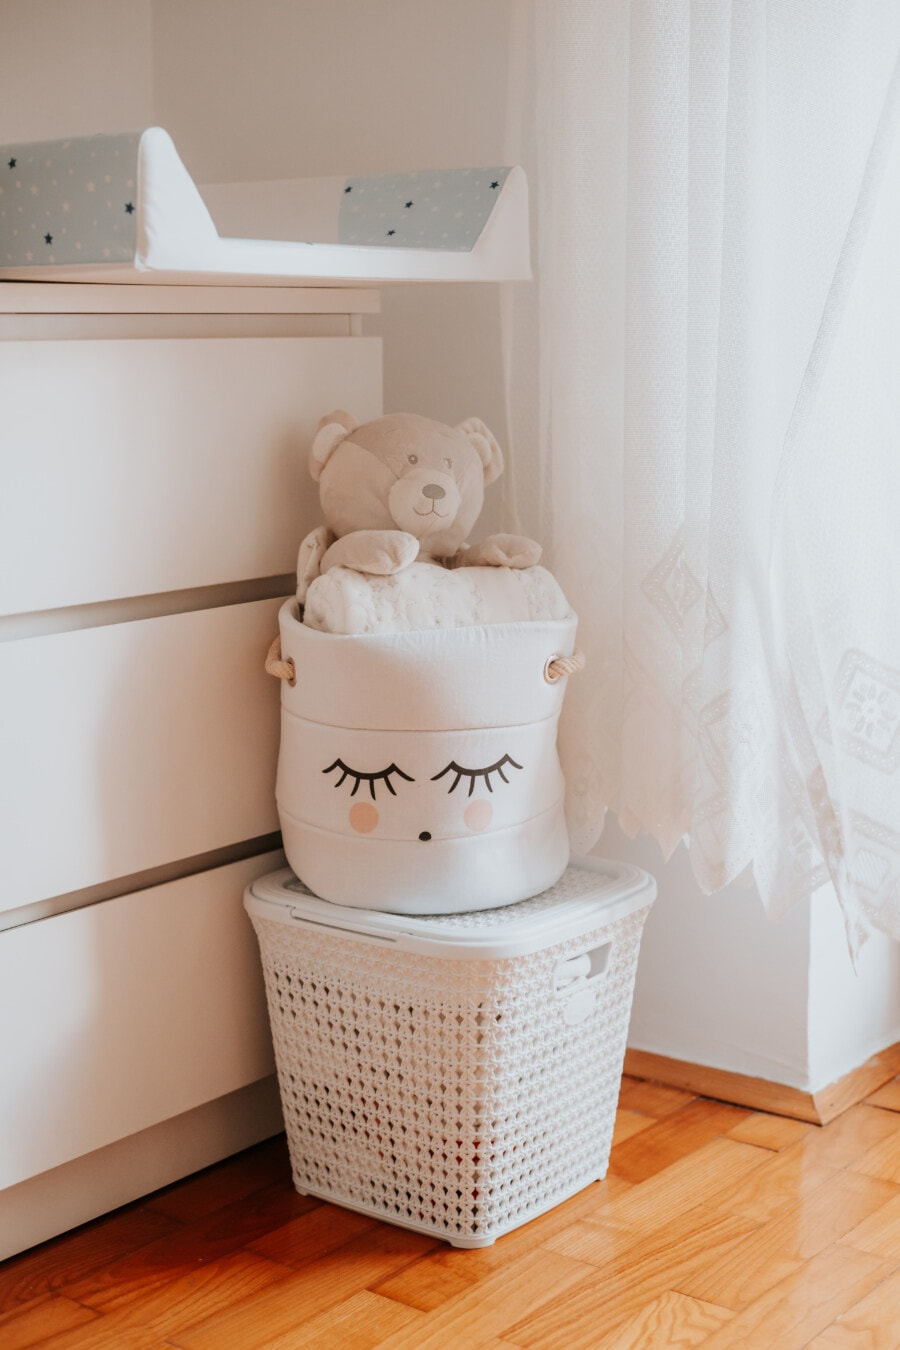 teddy bear toy, equipment, room, baby, indoors, interior design, contemporary, comfort, furniture, architecture